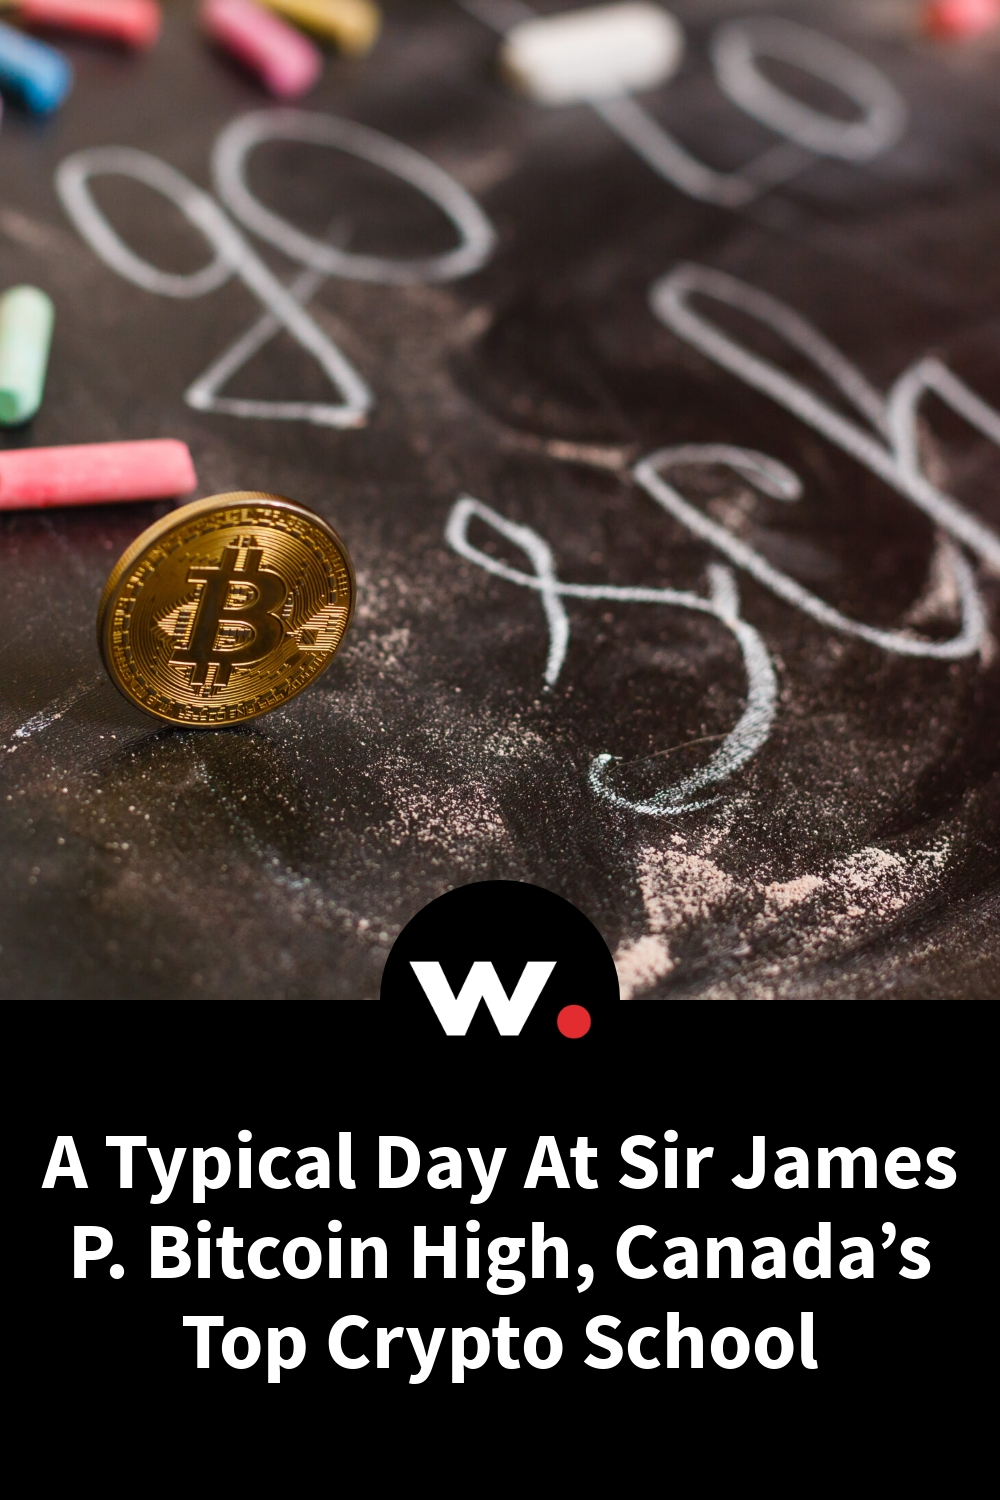 A Typical Day At Sir James P. Bitcoin High, Canada's Top Crypto School